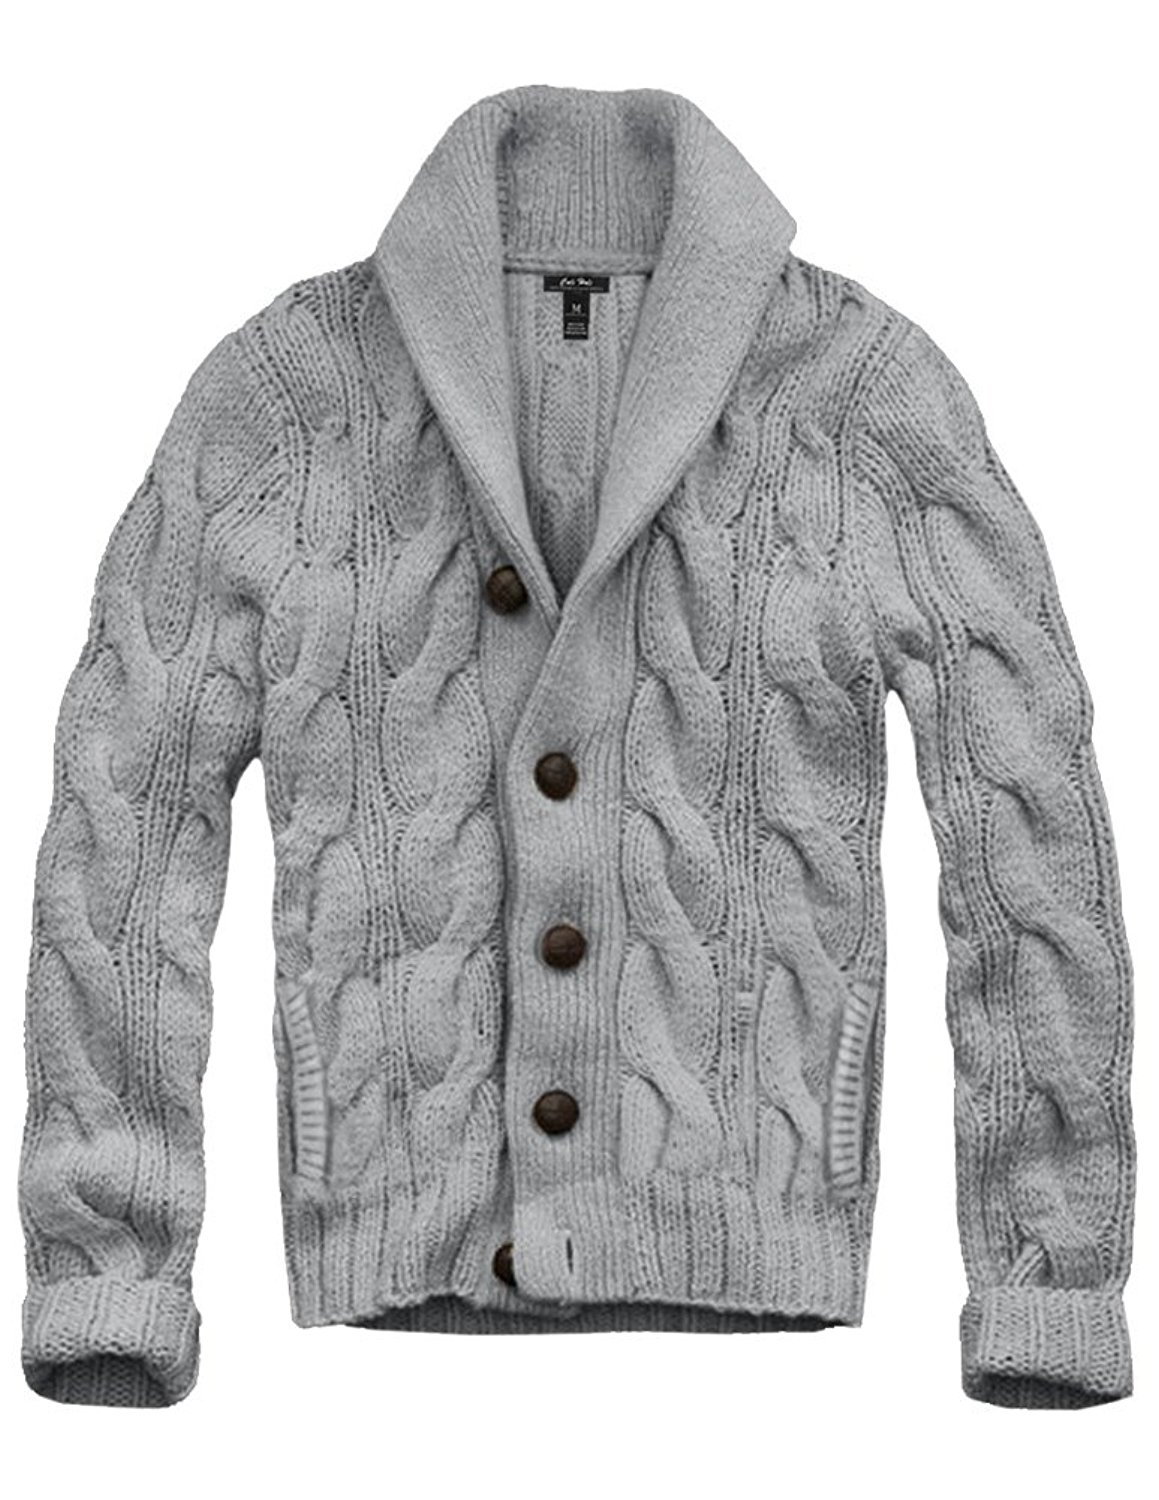 2f45402b541 Get Quotations · Mens Cali Holi Cable Knit Shawl Collar Cardigan Style Sweater  Grey